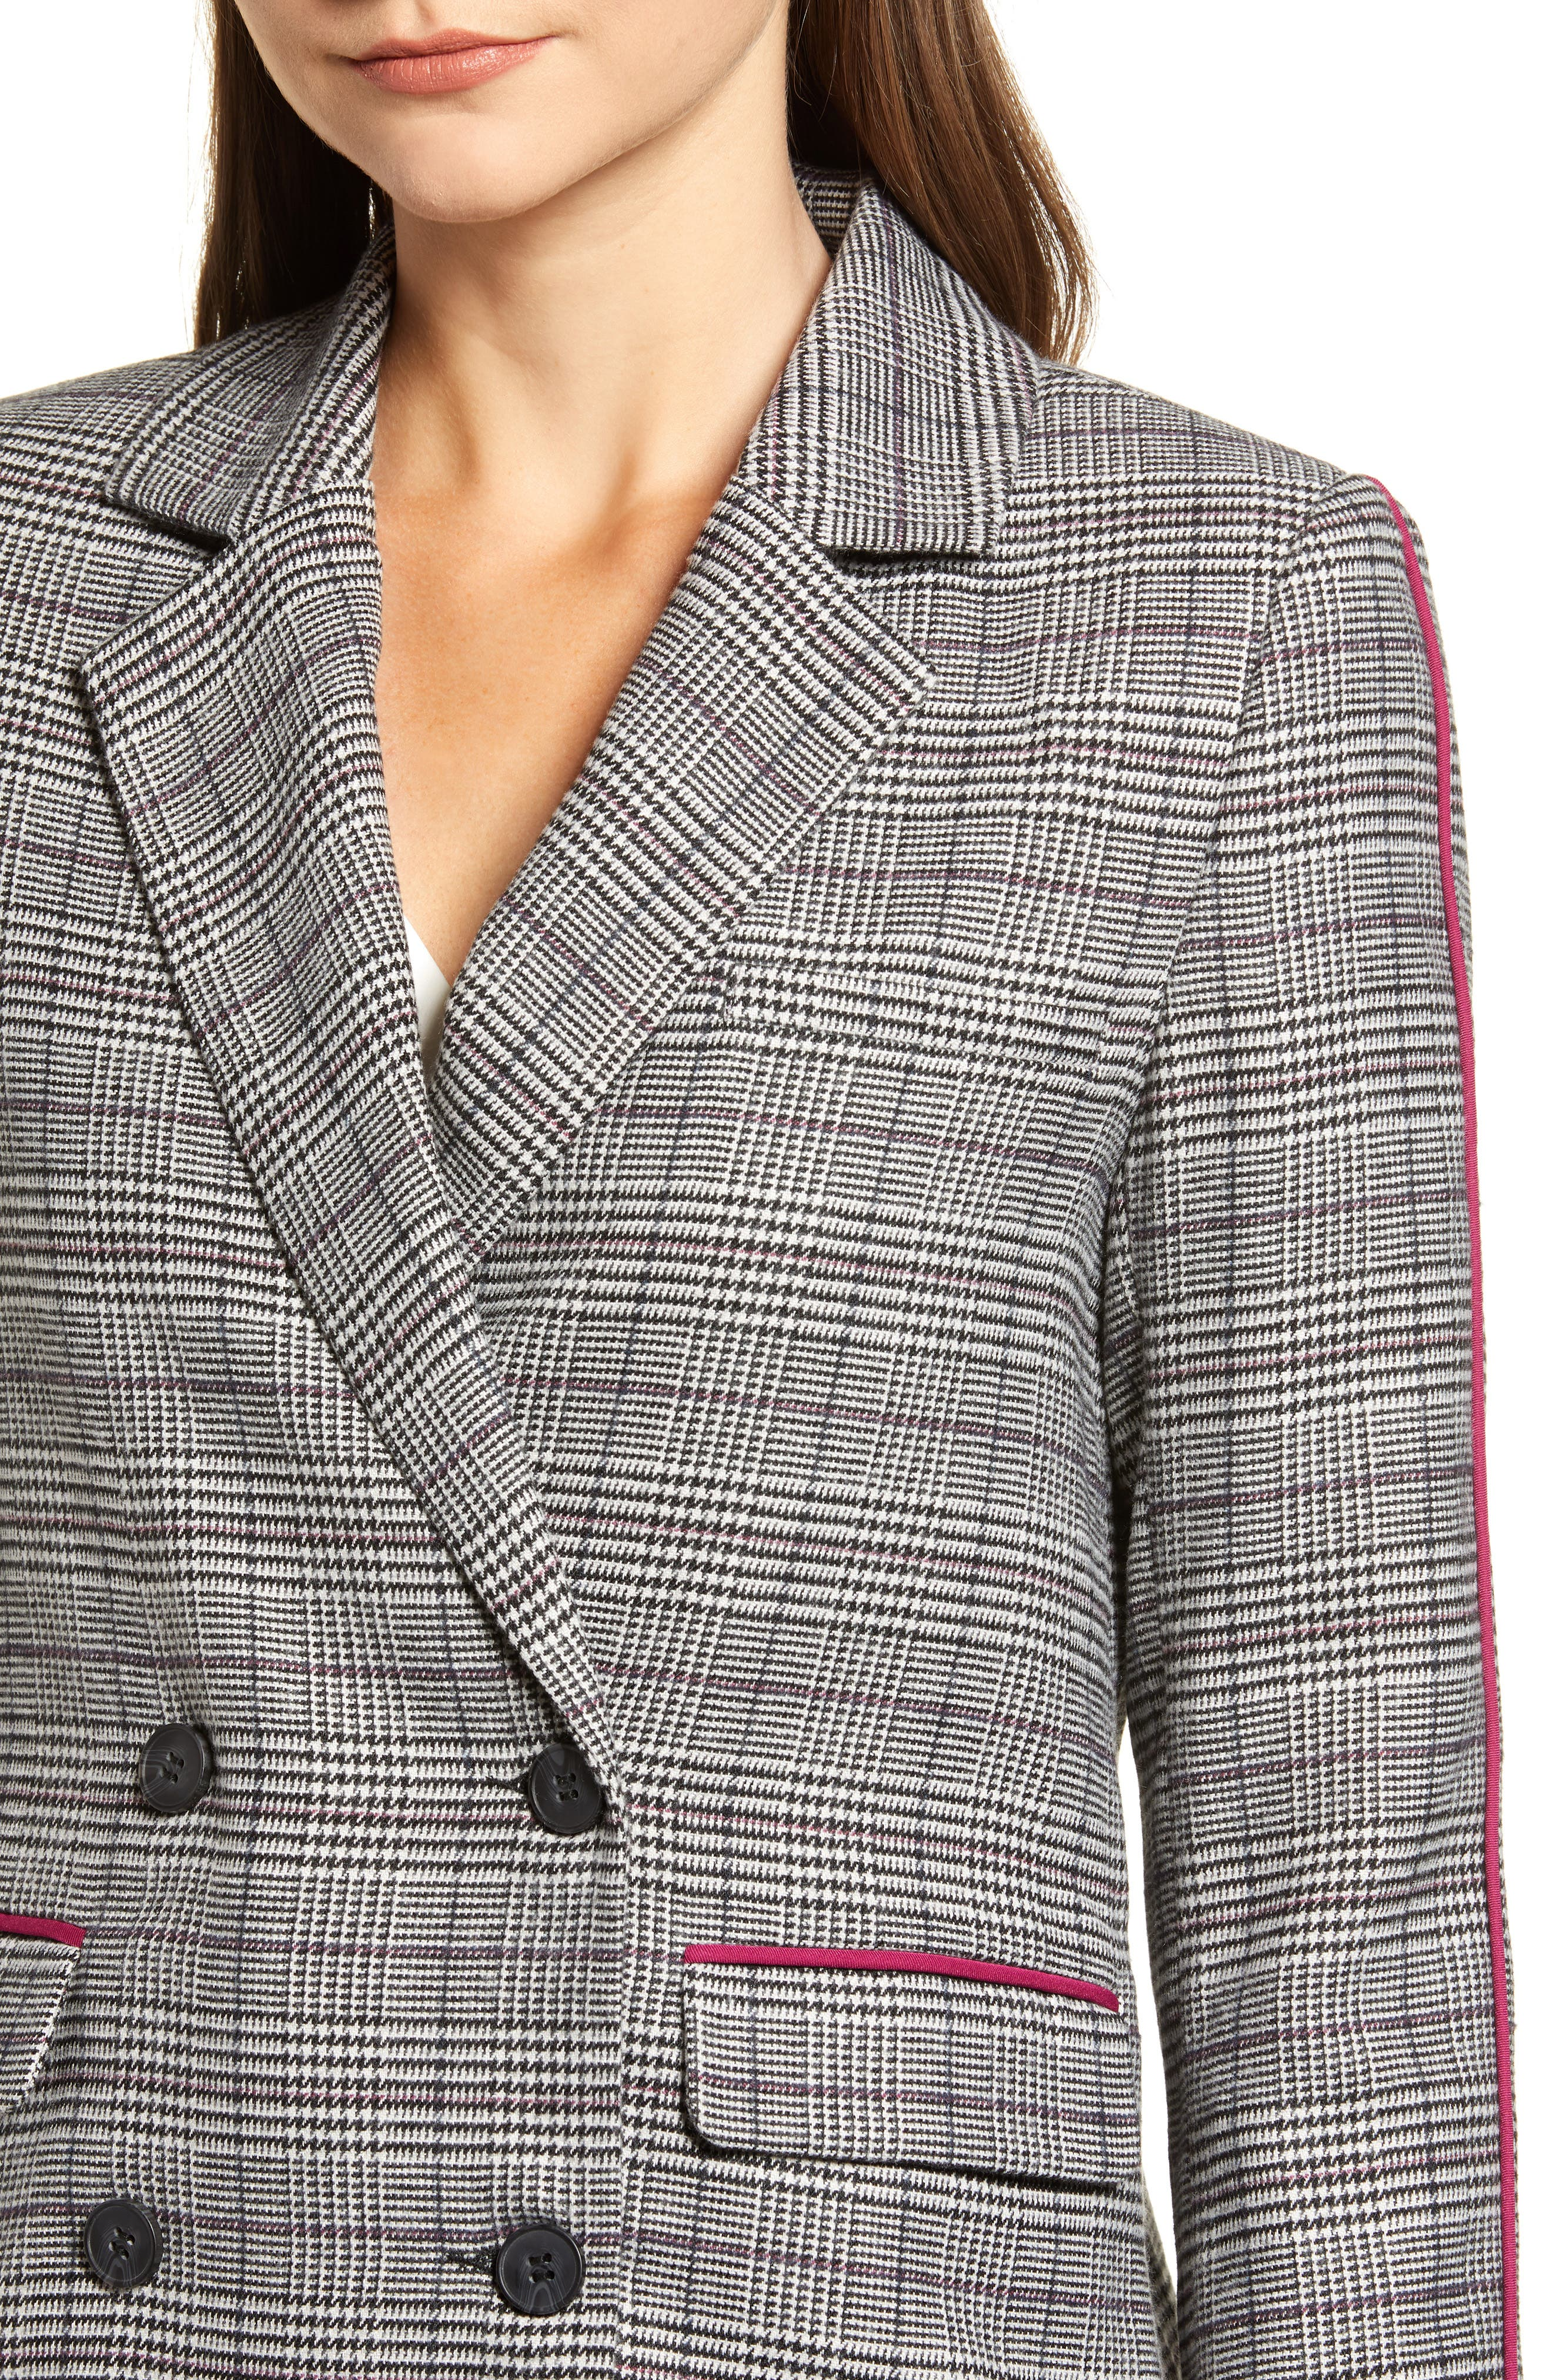 Chriselle Lim Bianca Piped Houndstooth Blazer,                             Alternate thumbnail 6, color,                             GREY PLAID